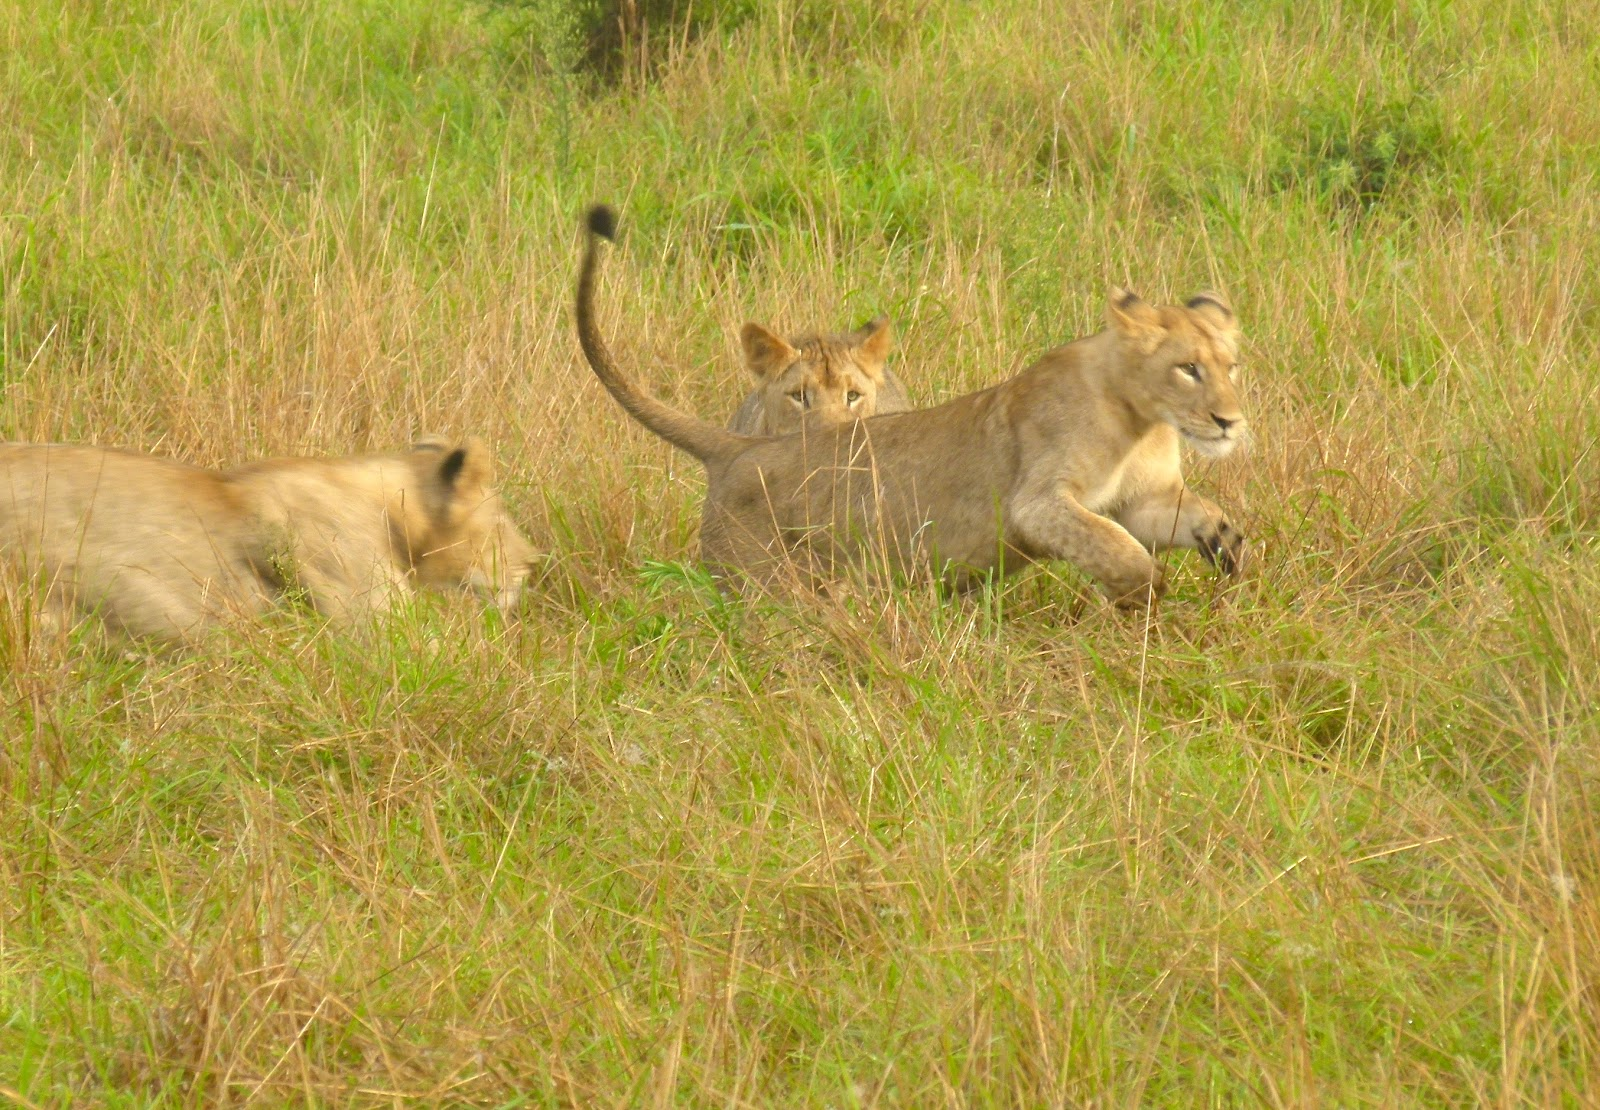 Mountain Lion Killed After Preying on Sheep   Oklahoma ...  Man Eaten By Lion In Front Of Family